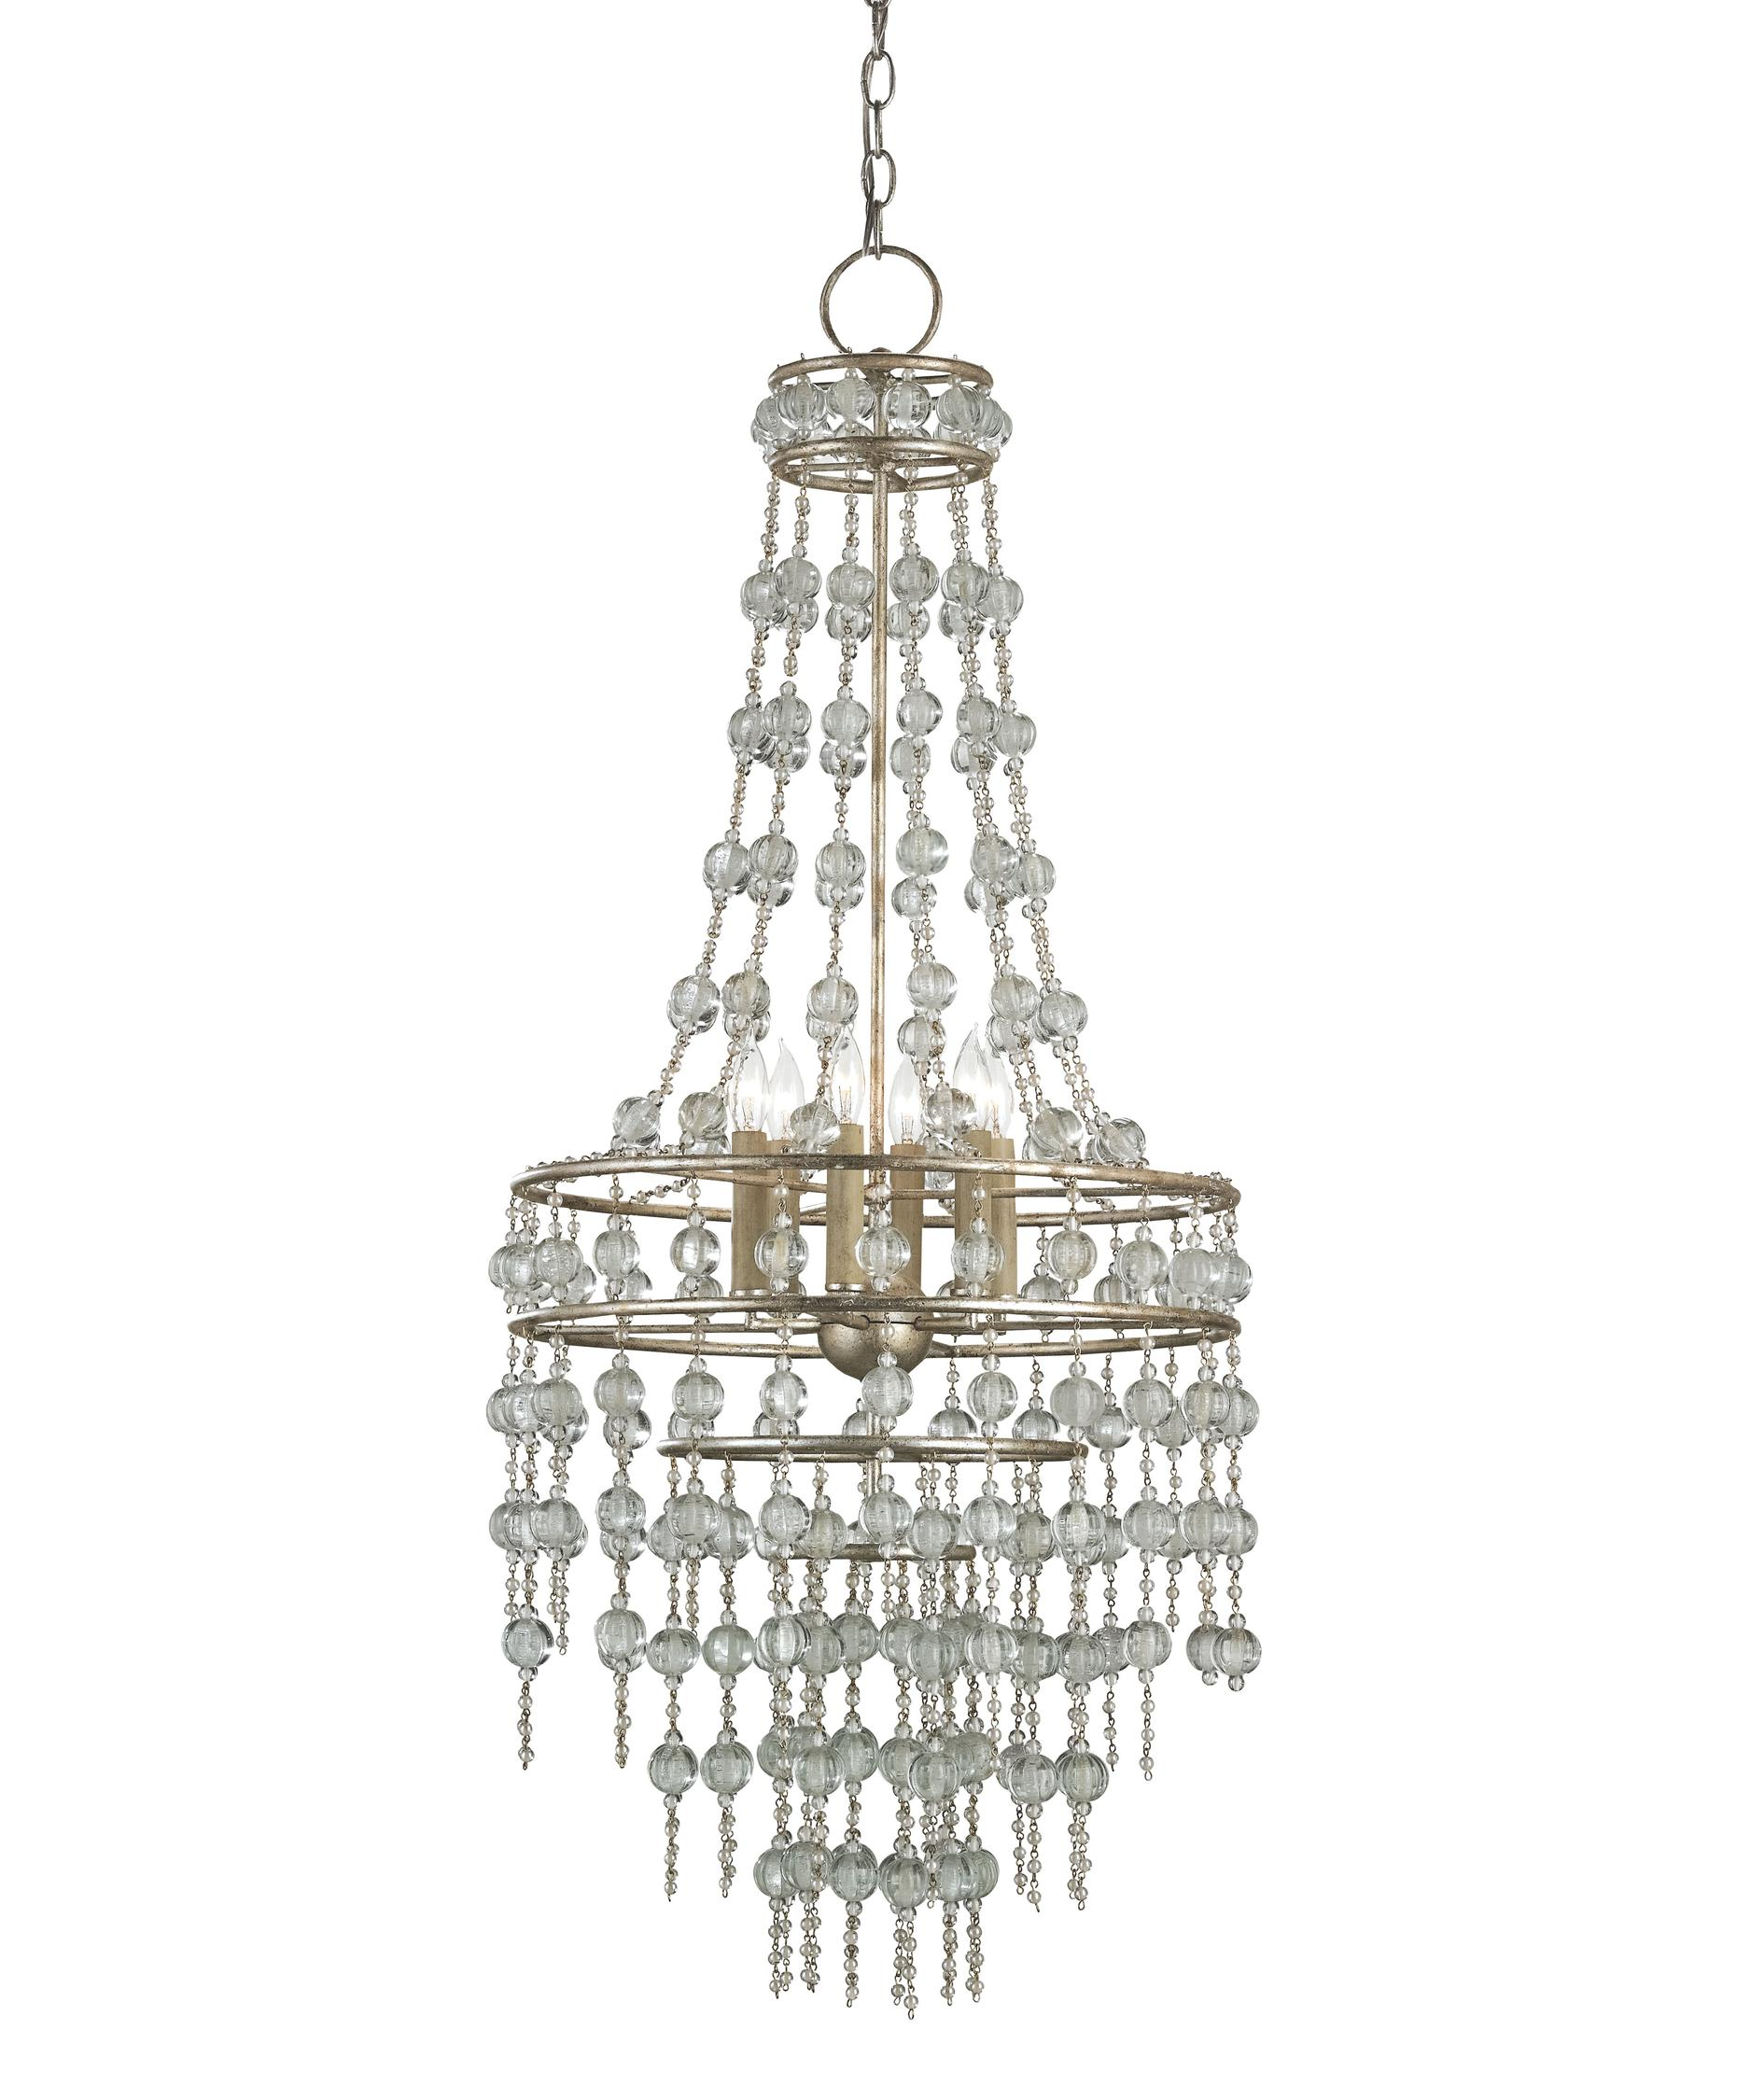 Currey and Company Rainhill 19 Inch Wide 6 Light Mini Chandelier – Currey and Company Lighting Chandeliers